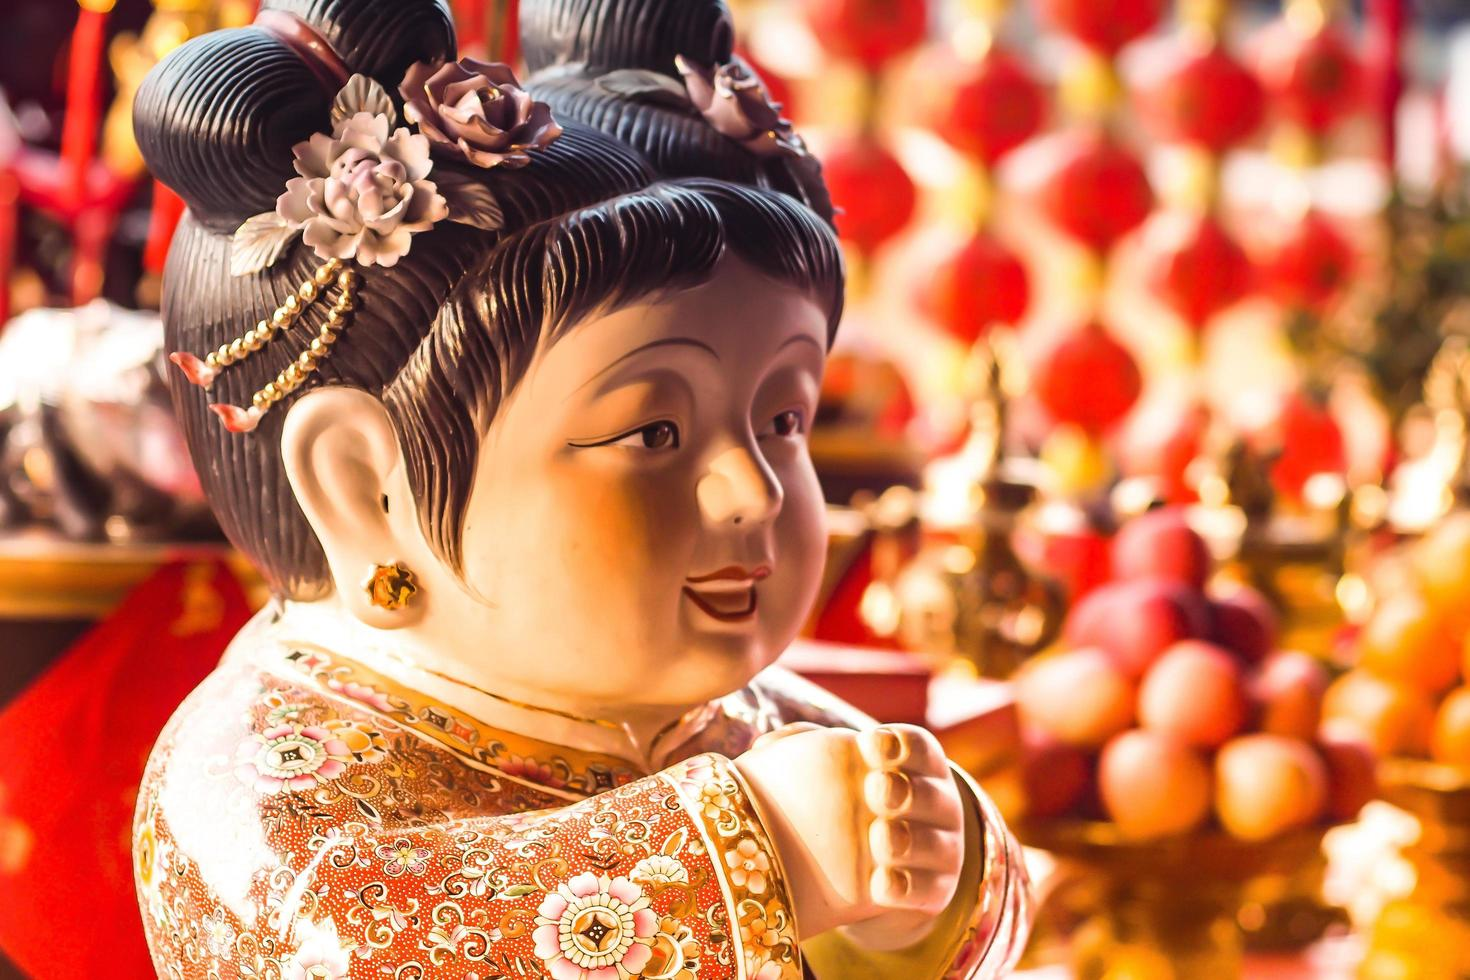 Samphao Lom, Thailand, 2020 - Traditional Chinese New Year decoration photo